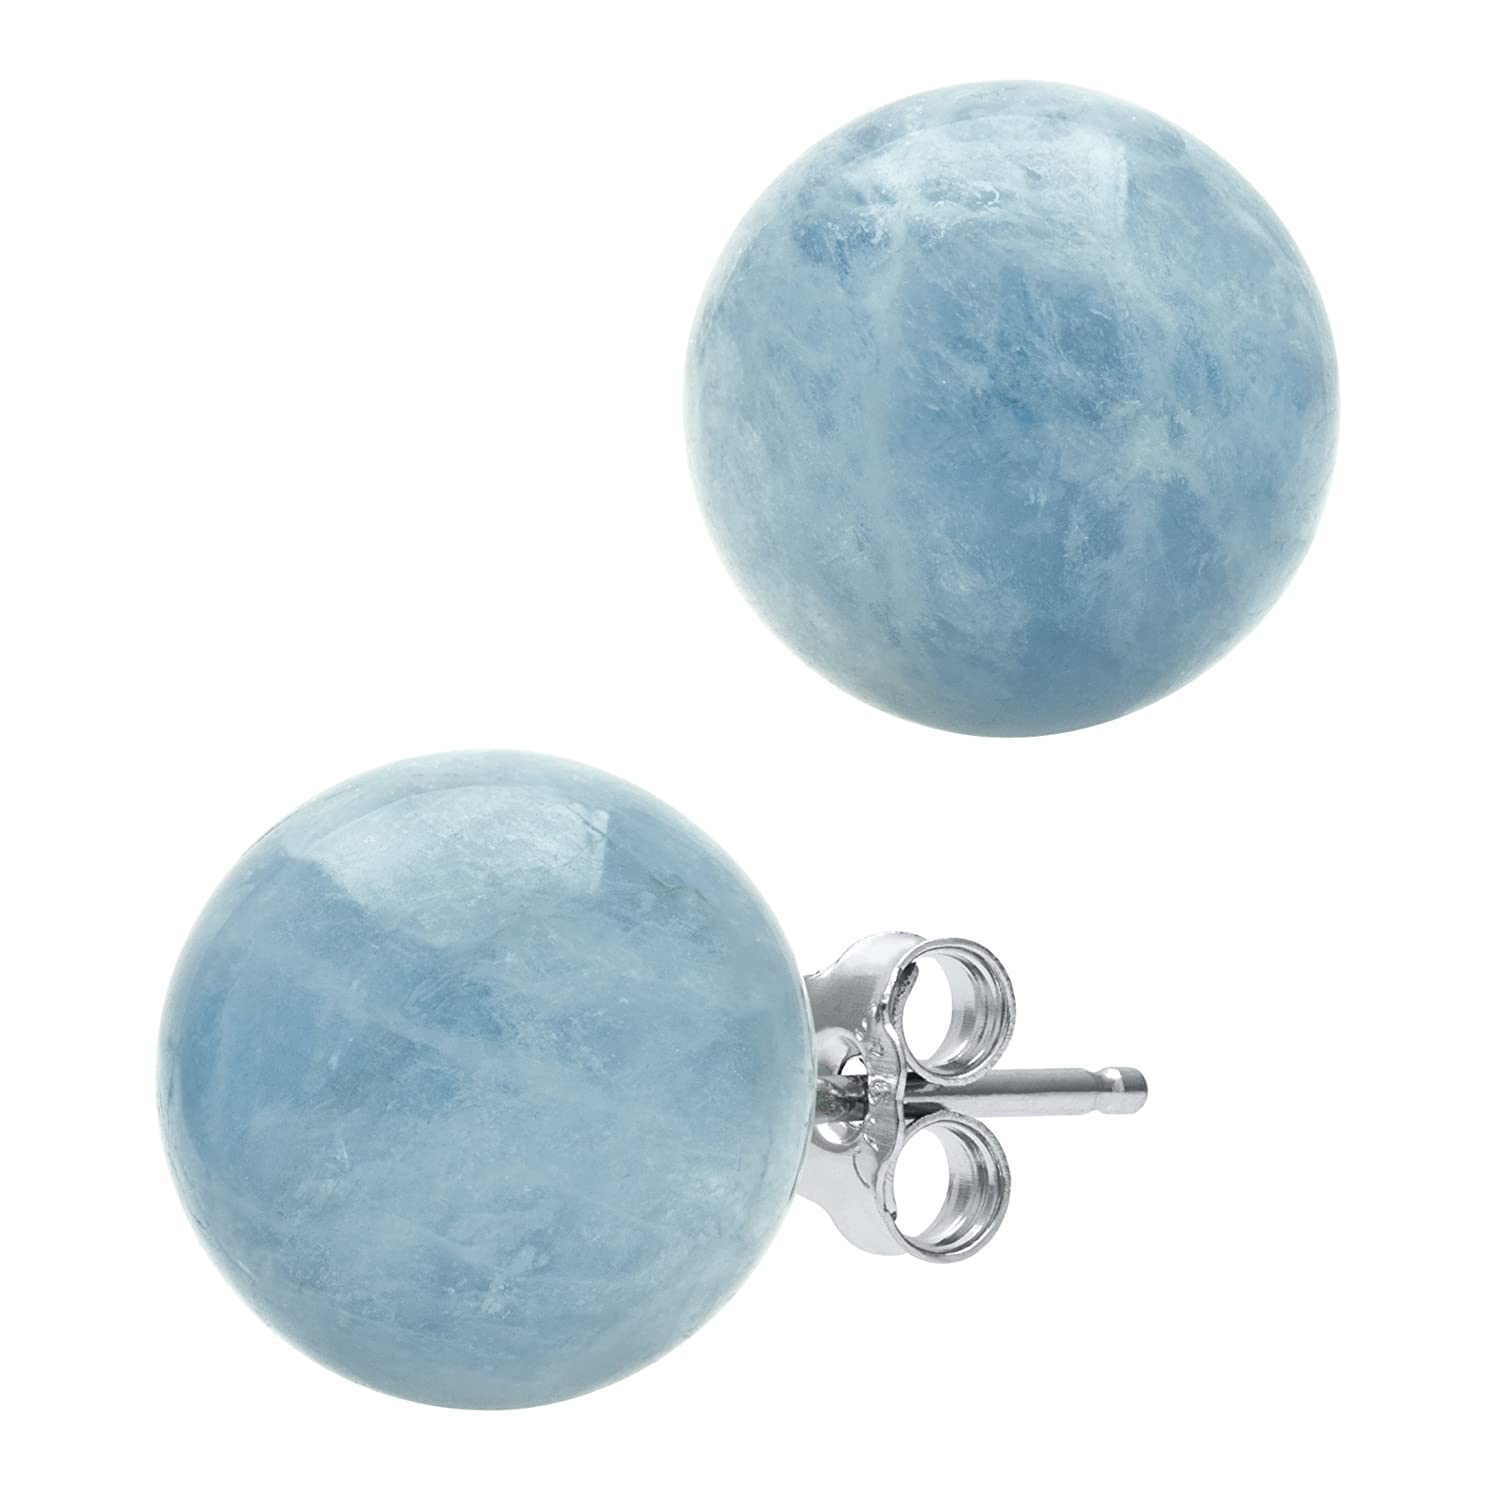 by london genuine large earrings gold silver loading moda aquamarine diamond cultured pearl yoko white